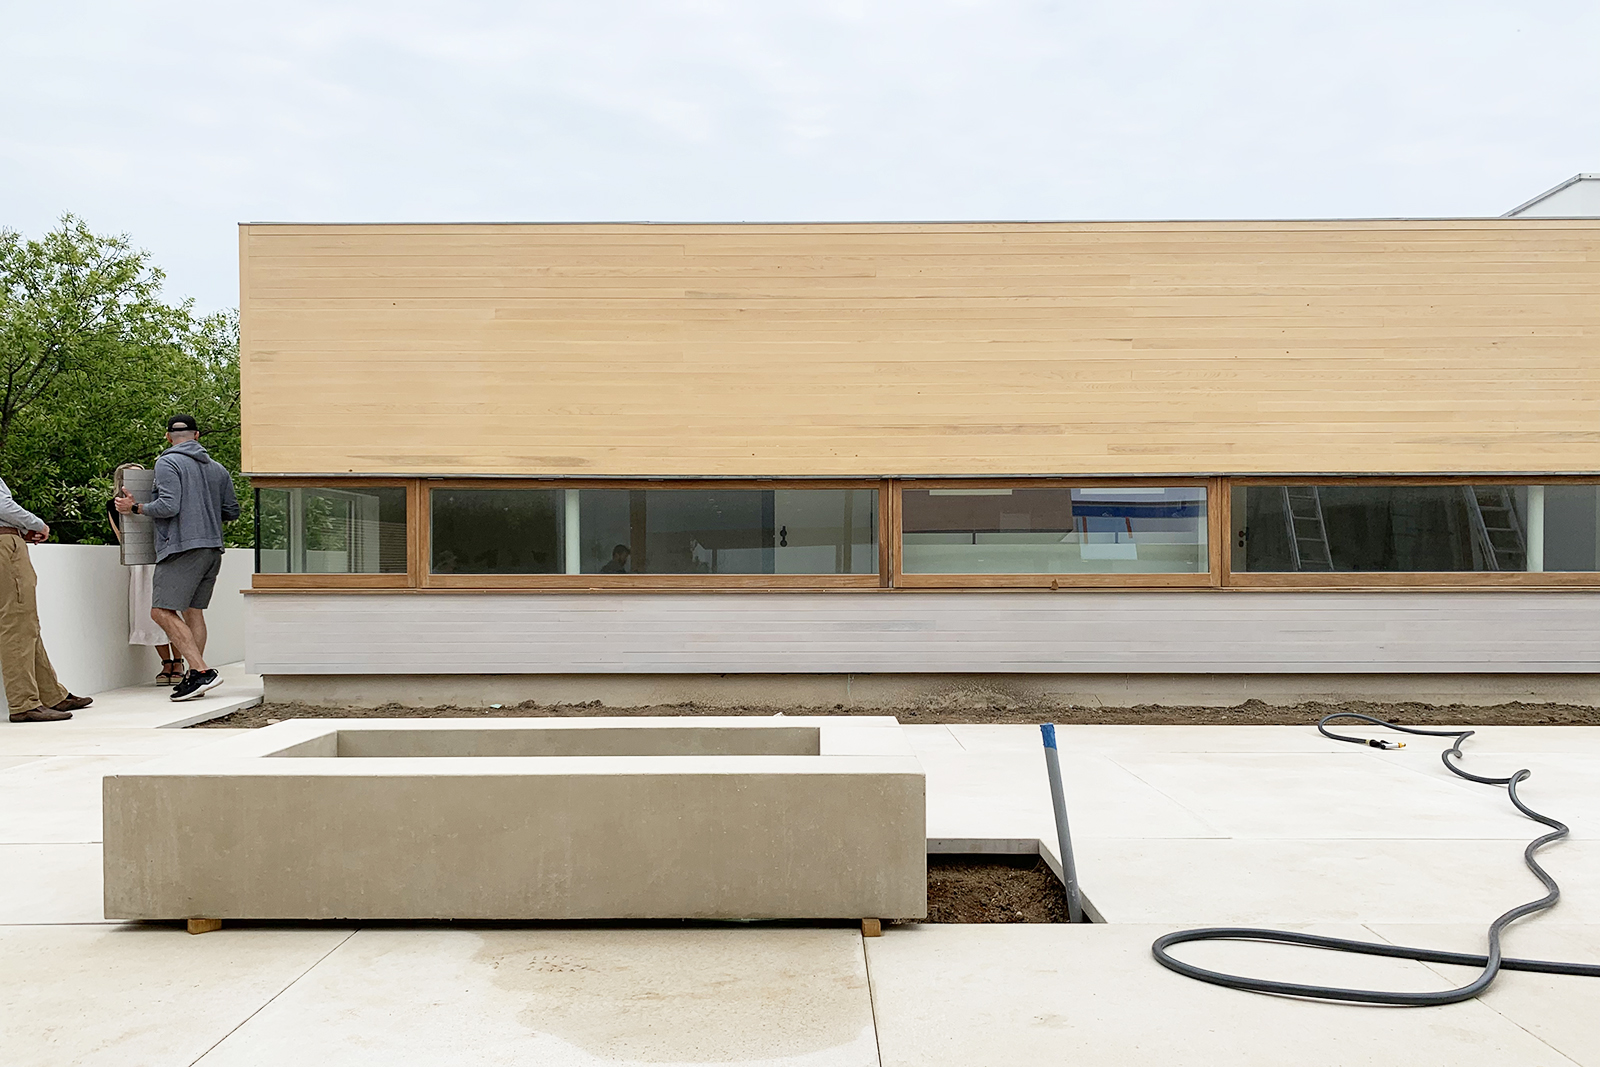 11-res4-resolution-4-architecture-surfside-modern-renovation-montauk-hamptons-ny-courtyard-firepit.jpg